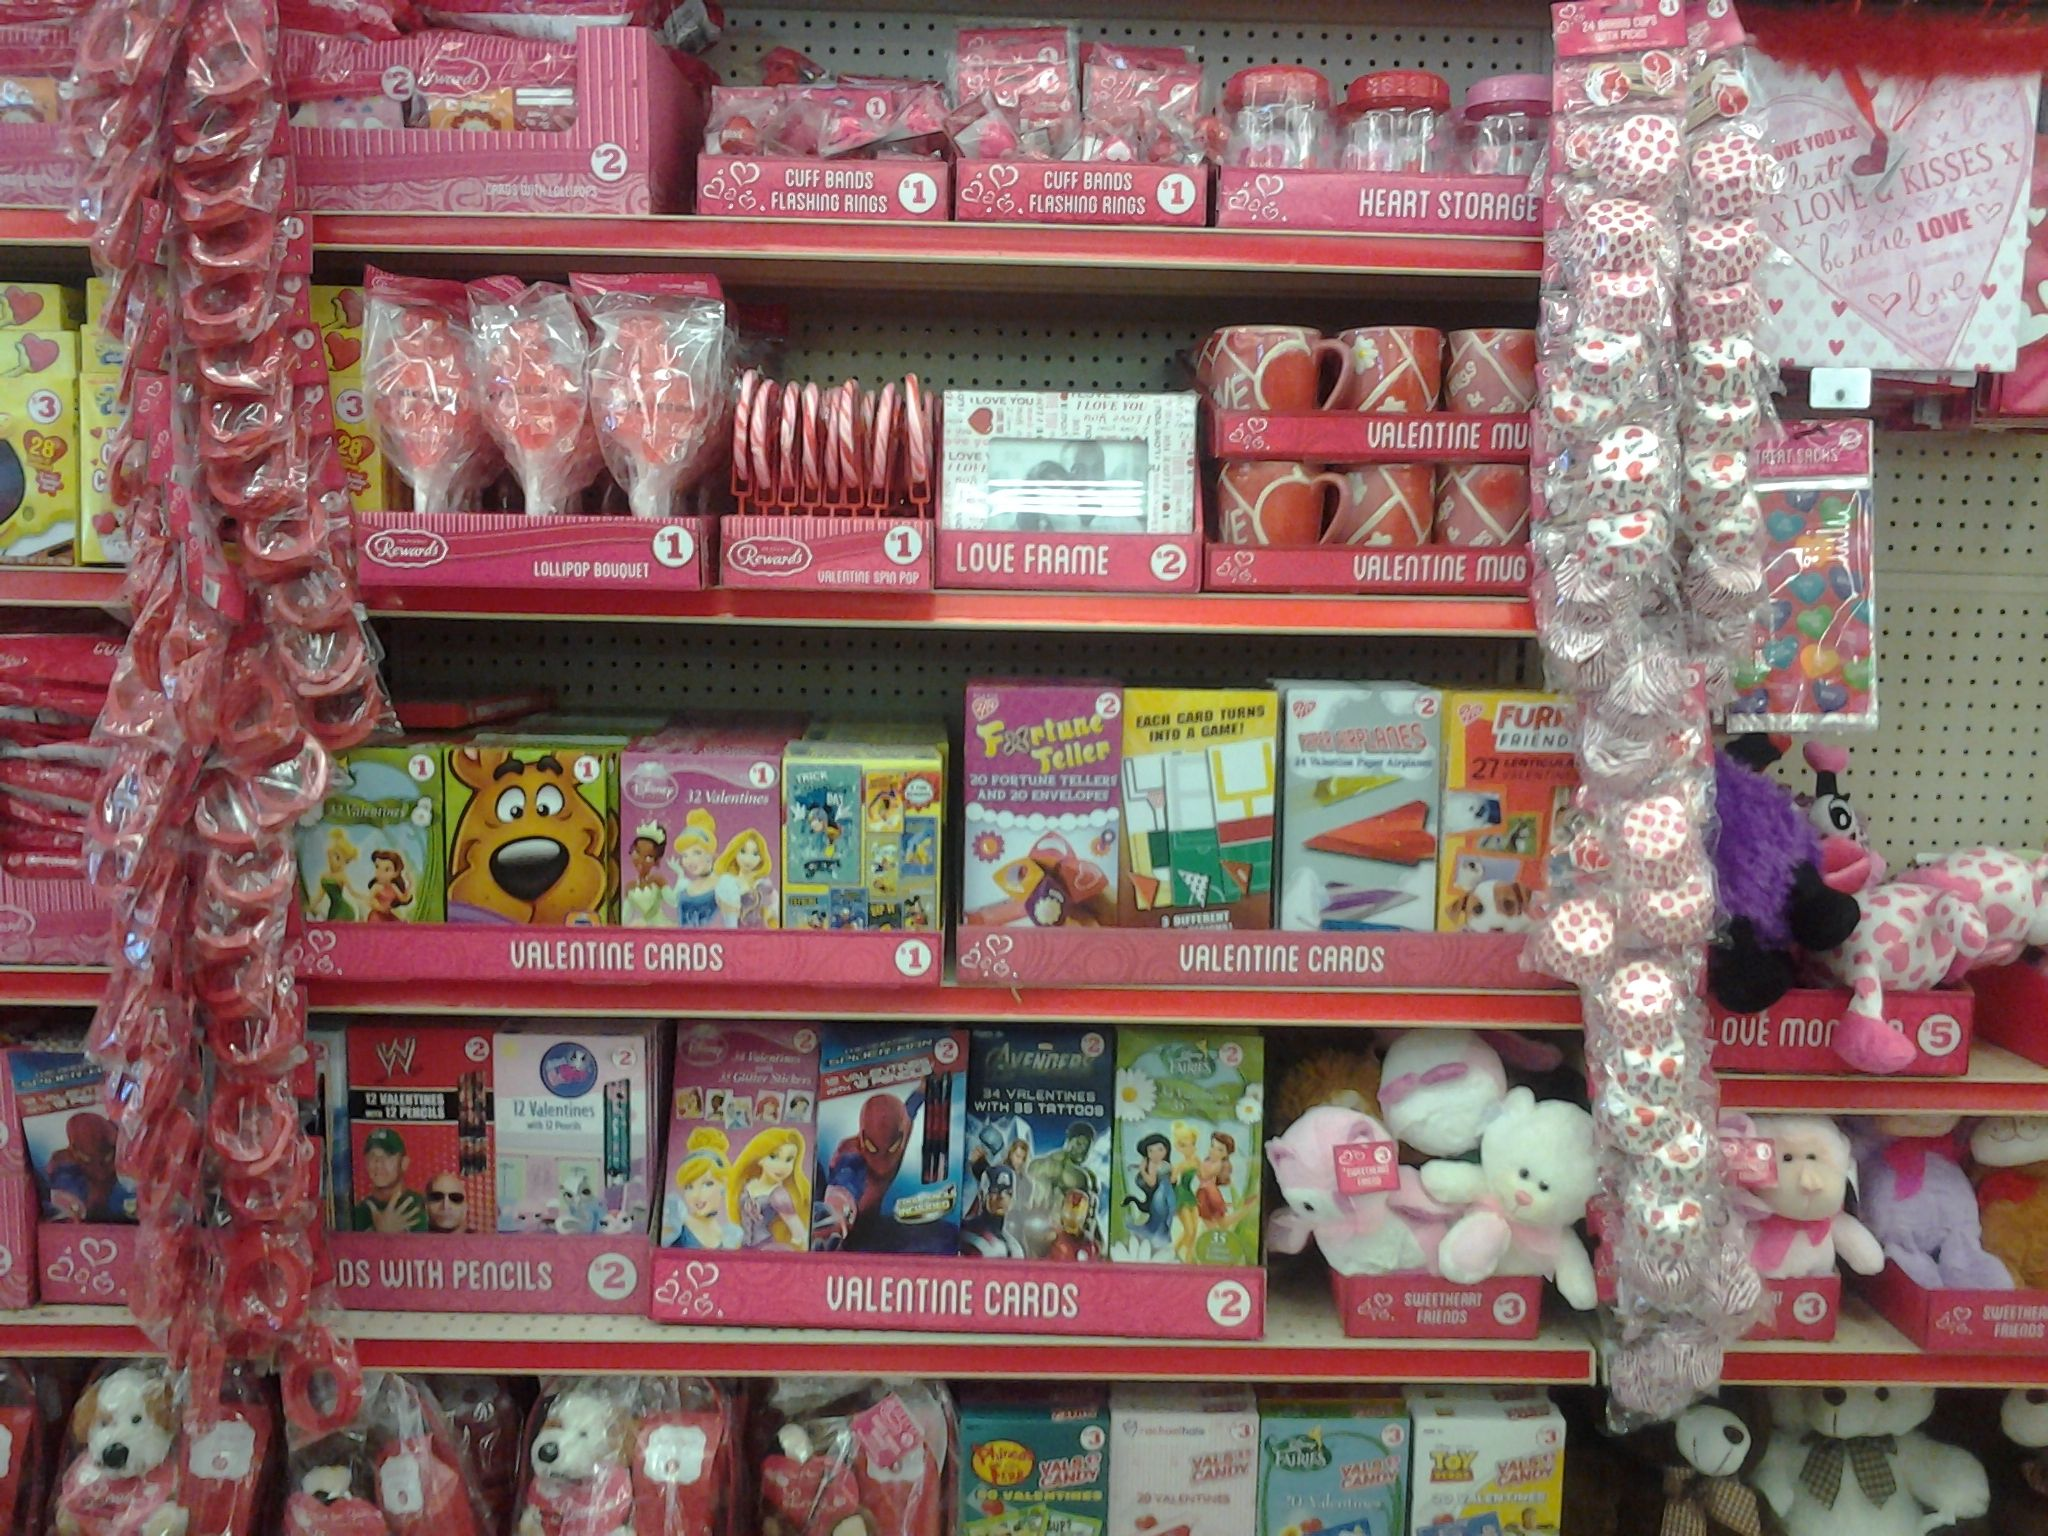 Valentines day at family dollar in arlington tx 20481536 valentines day at family dollar in arlington tx 20481536 aiddatafo Choice Image